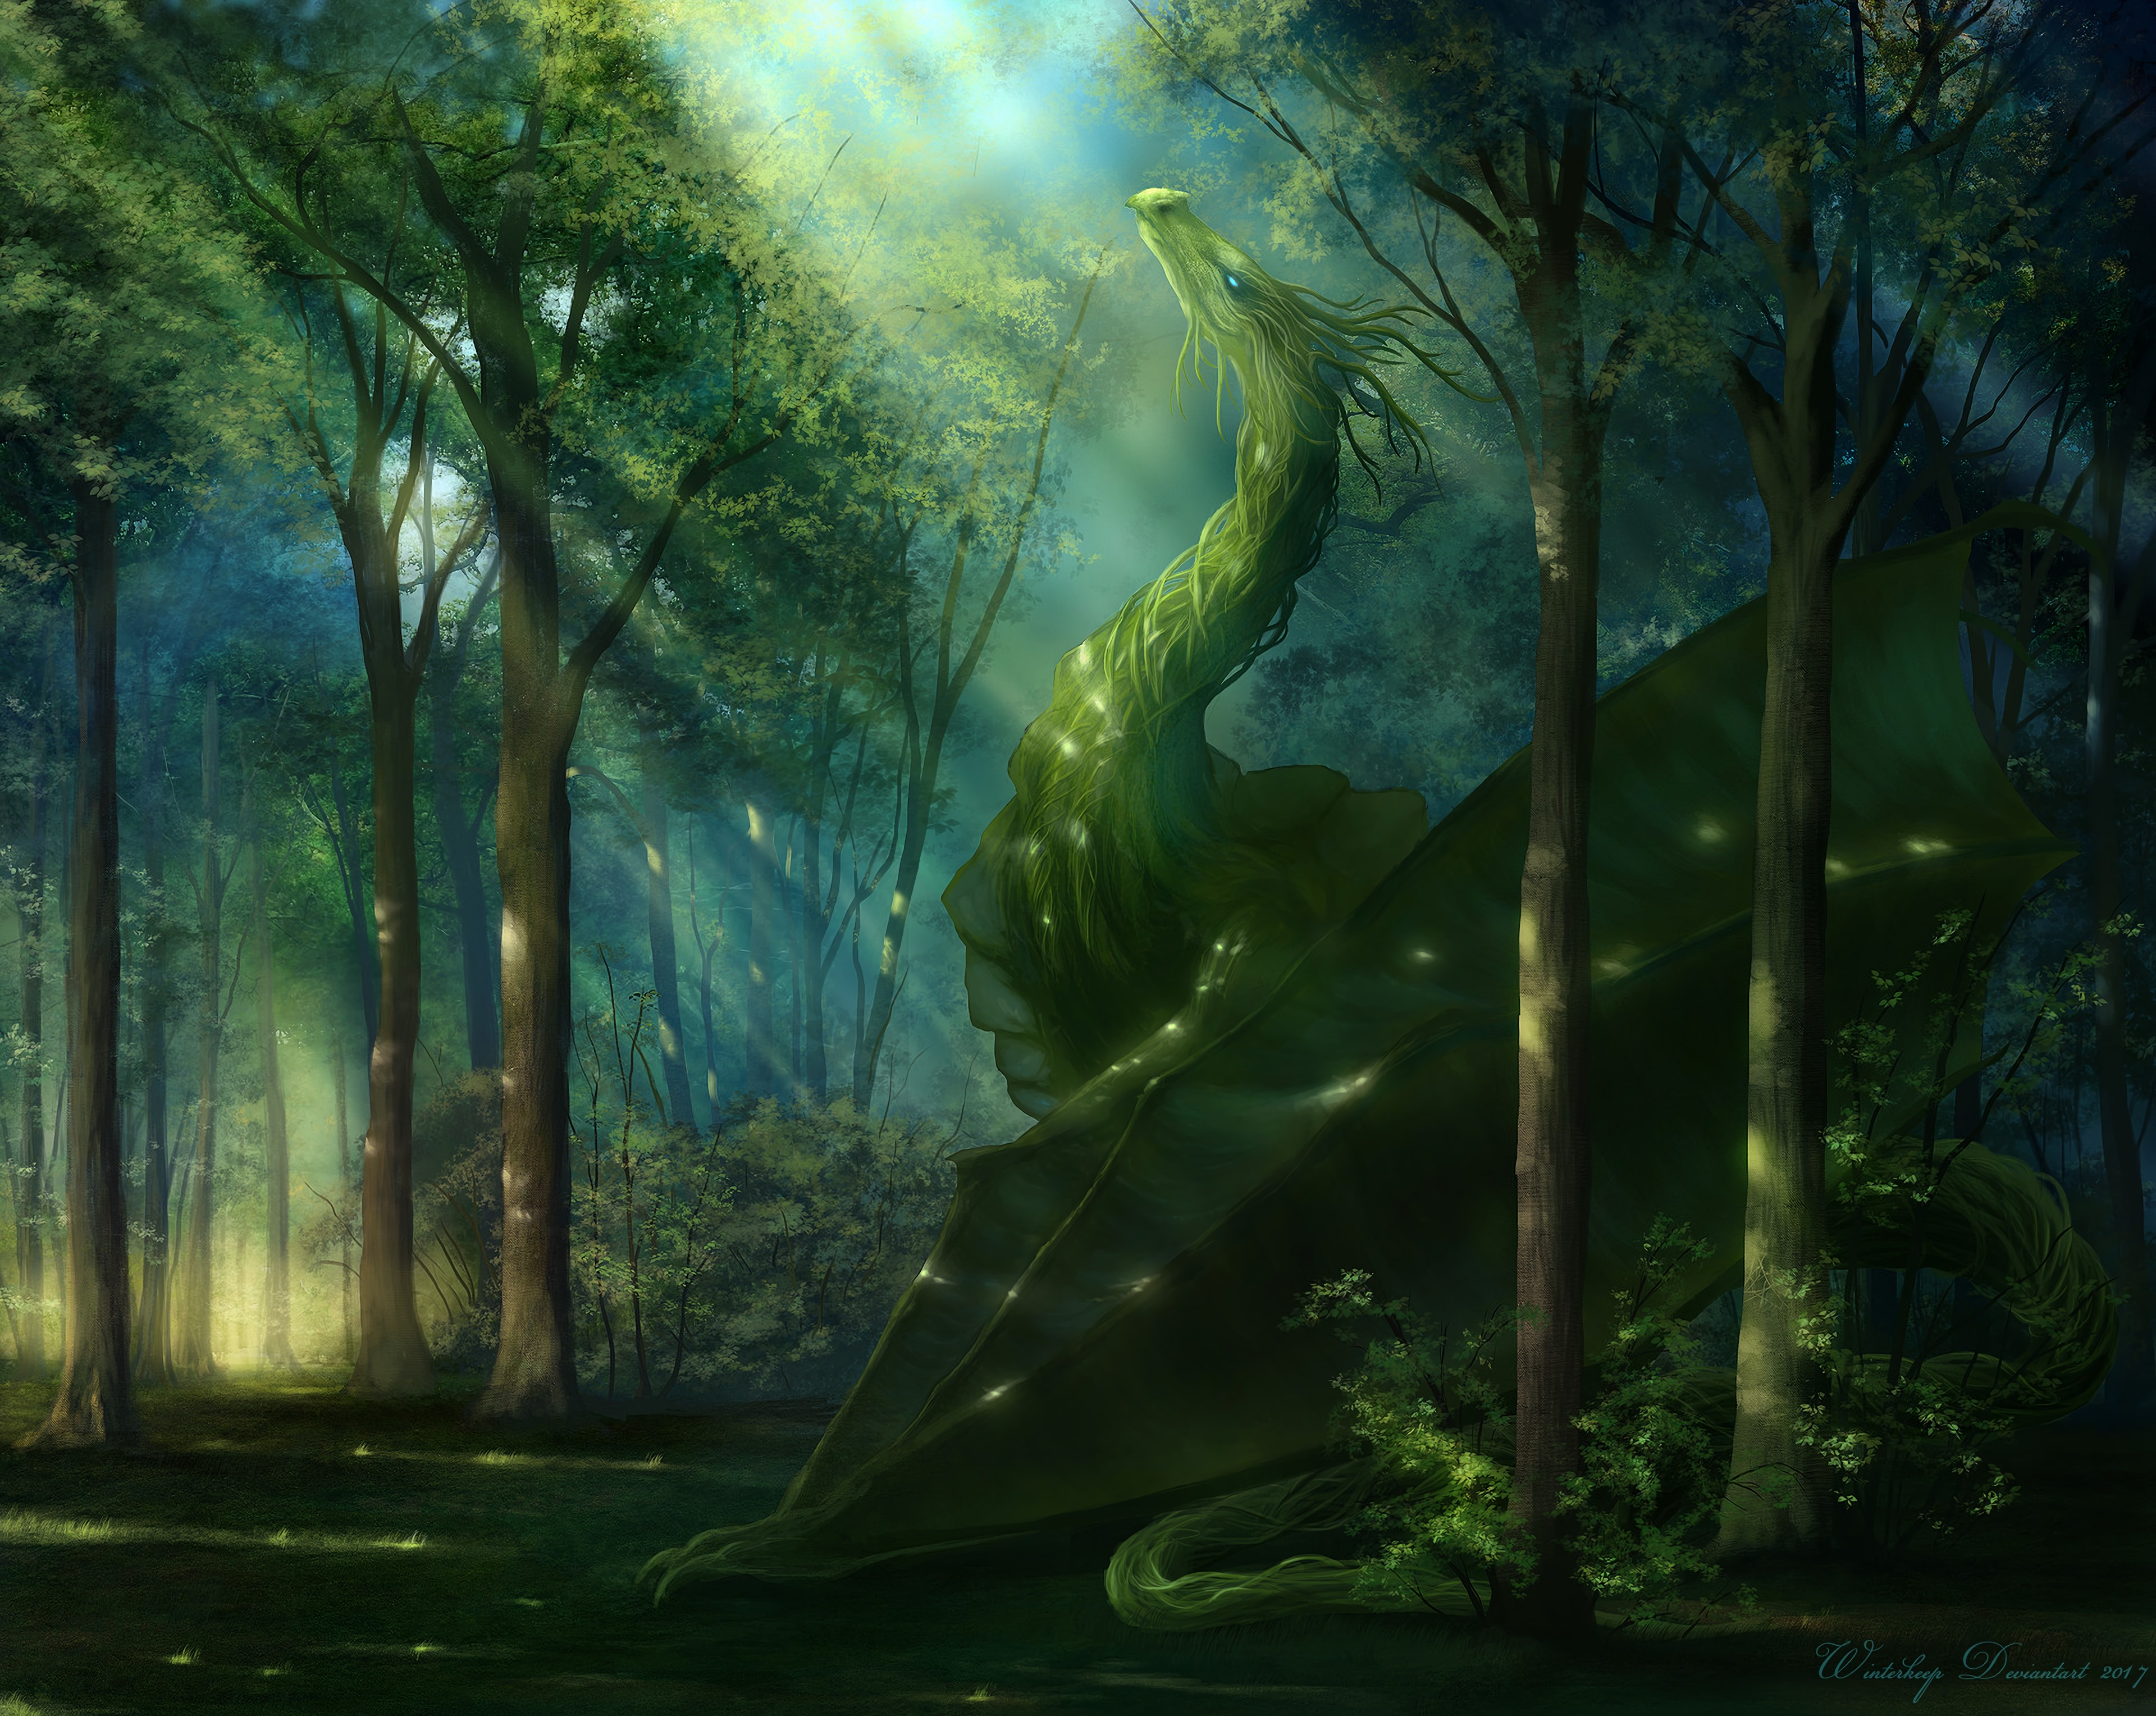 141471 download wallpaper Dragon, Forest, Art, Sunlight screensavers and pictures for free